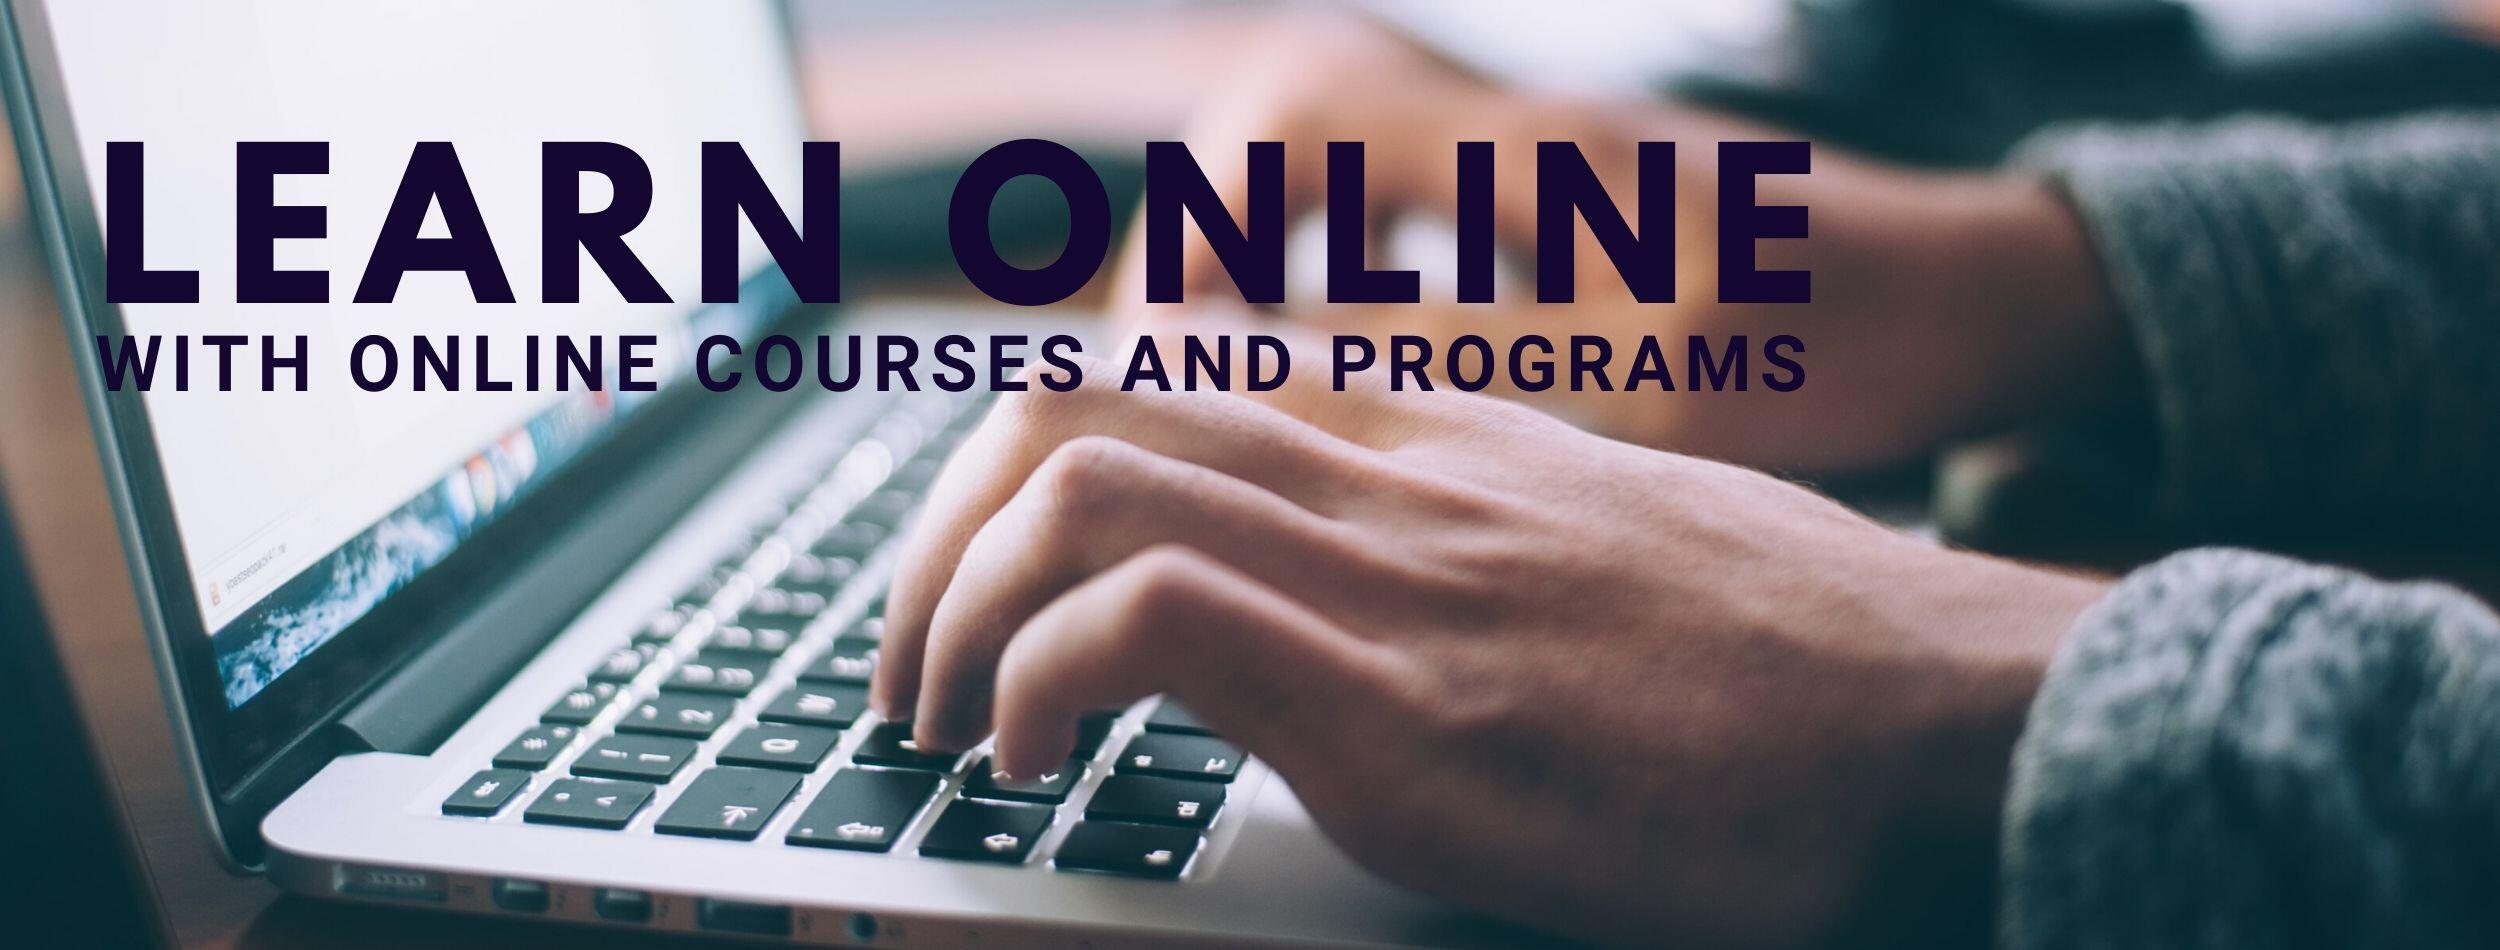 Learn online with online courses and programs